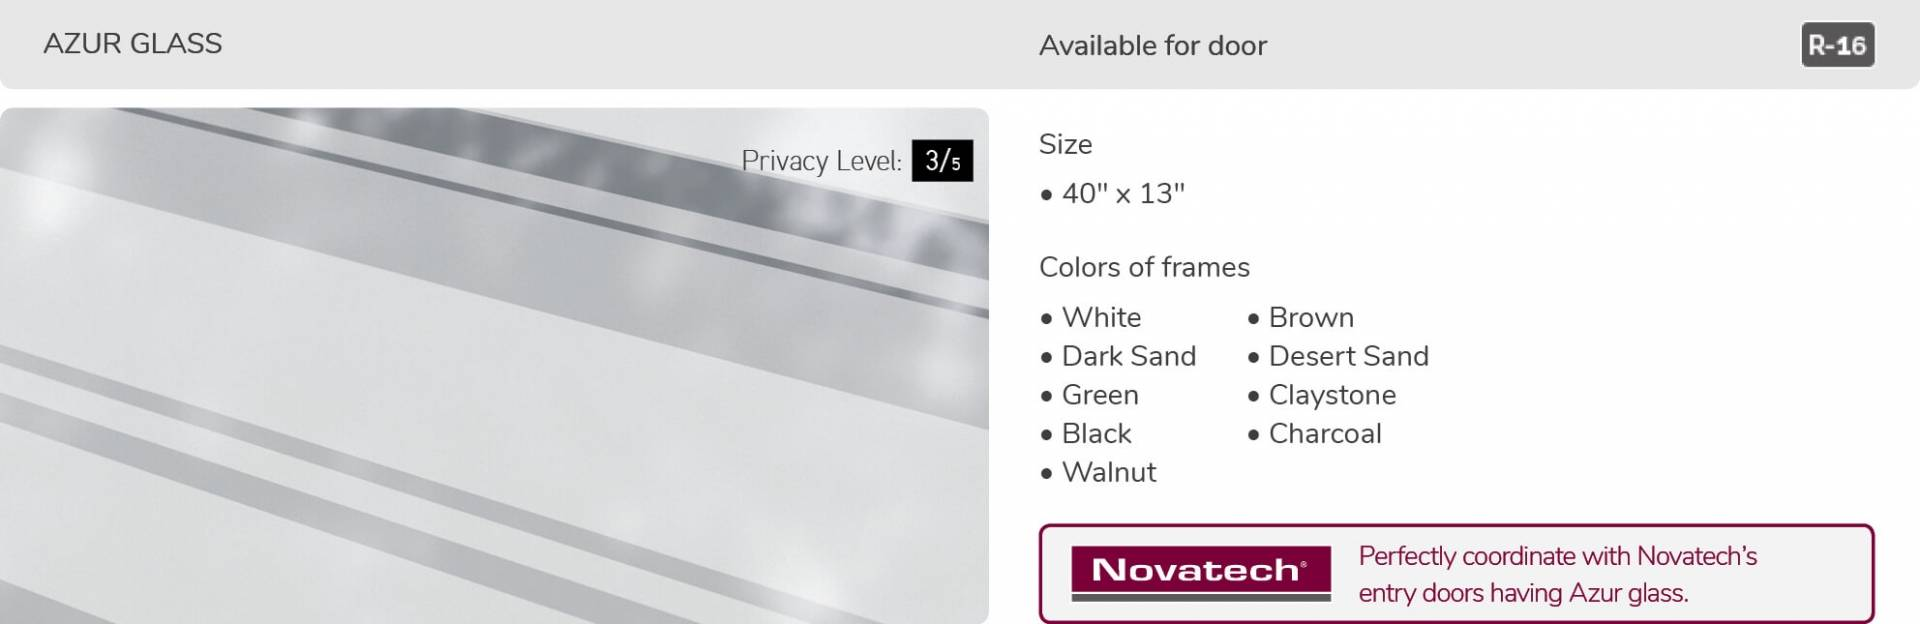 Azur glass, 40' x 13', available for door R-16